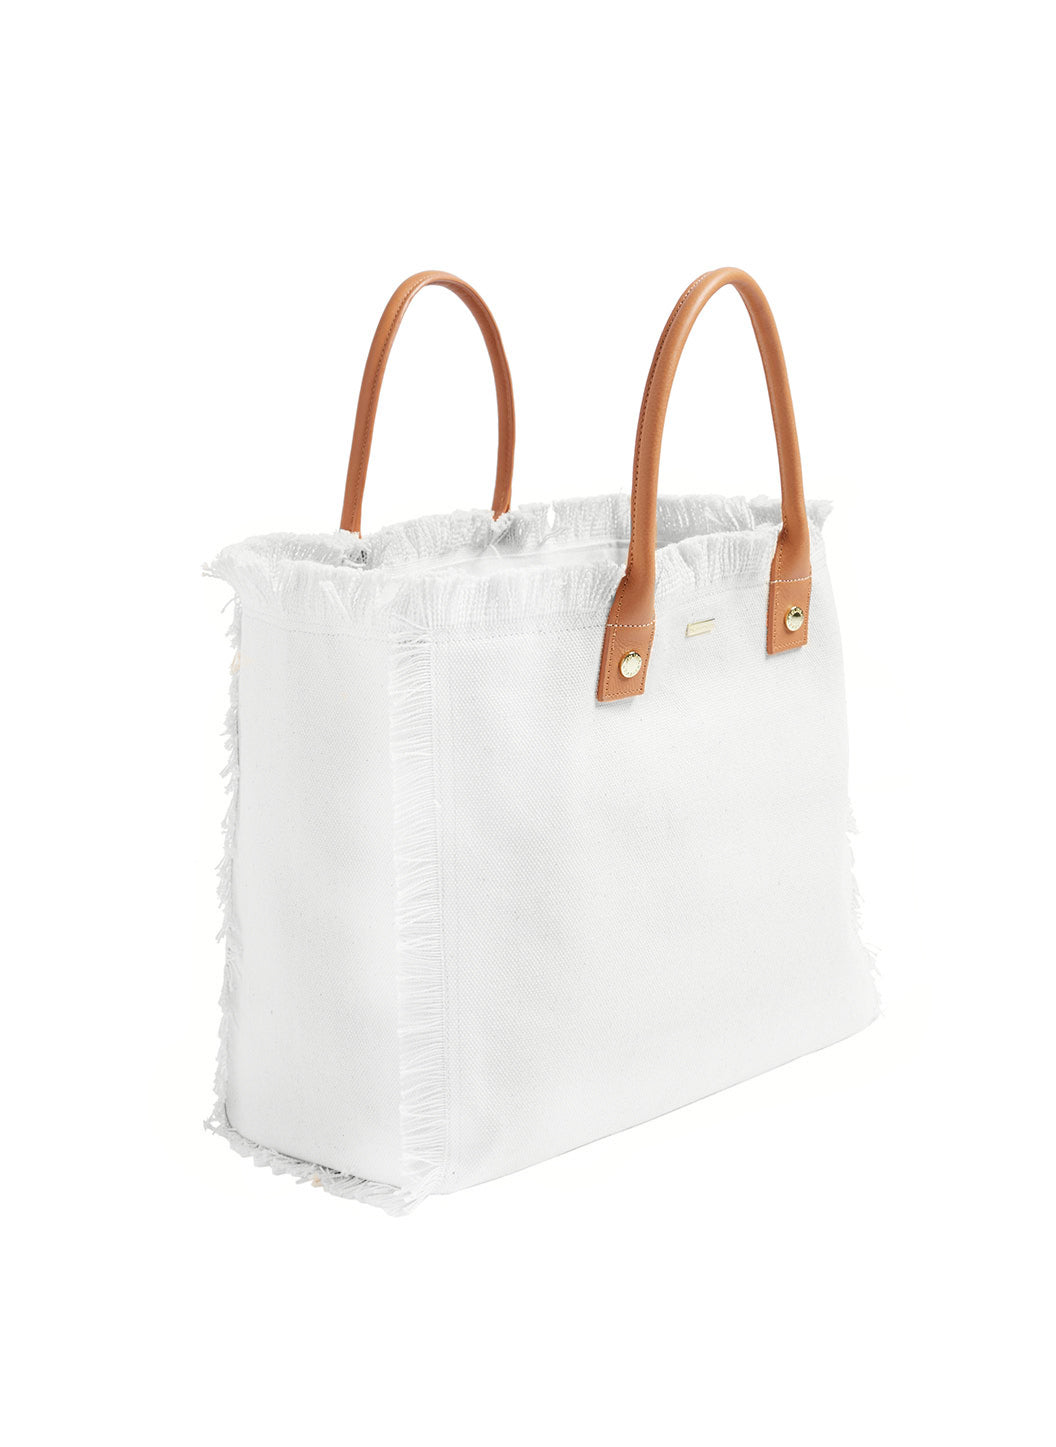 Cap Ferrat Large Beach Tote White - Melissa Odabash Accessories